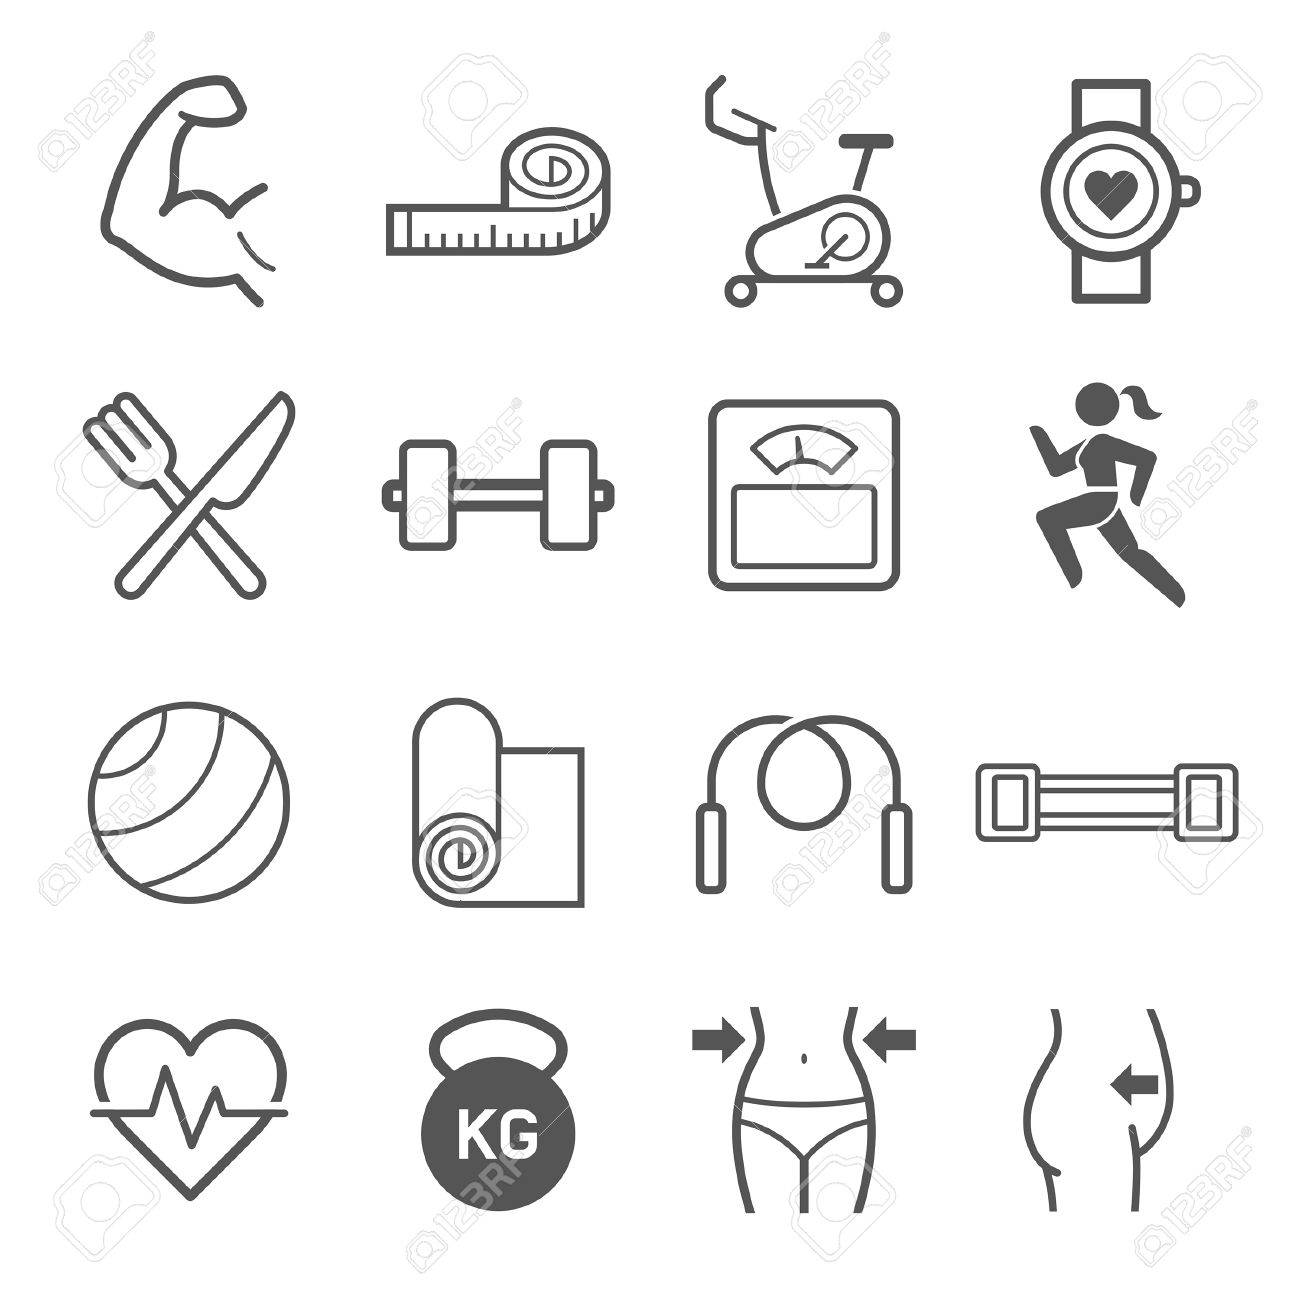 Set of exercise icons. illustrations. - 57844706